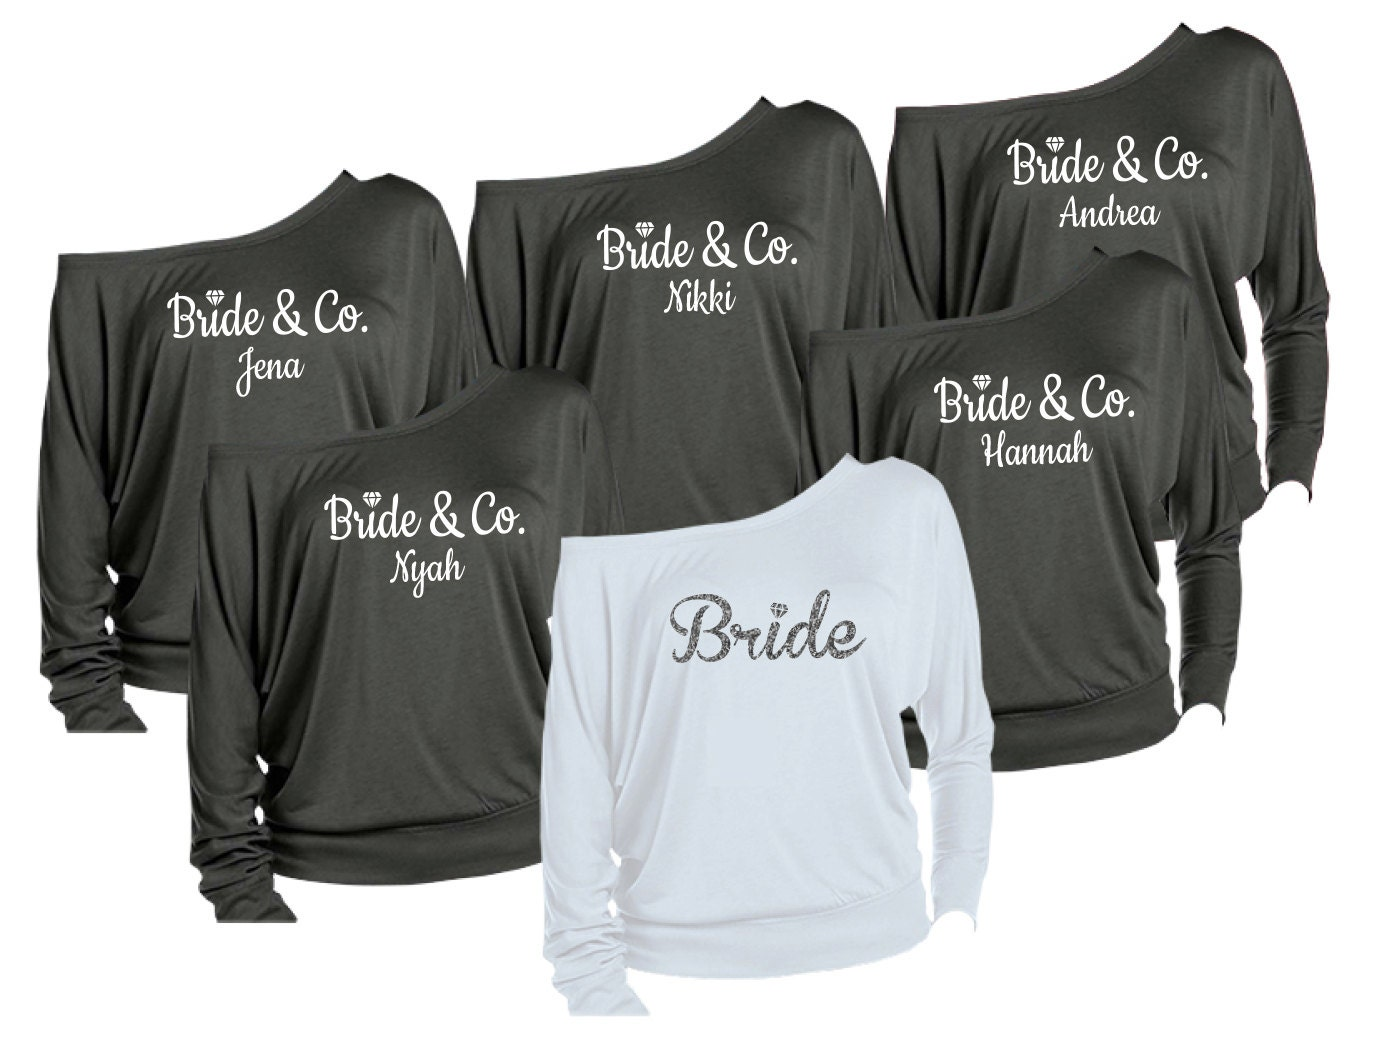 Wedding Bridesmaids Shirts 6 personalized bridesmaids shirts brides maid of